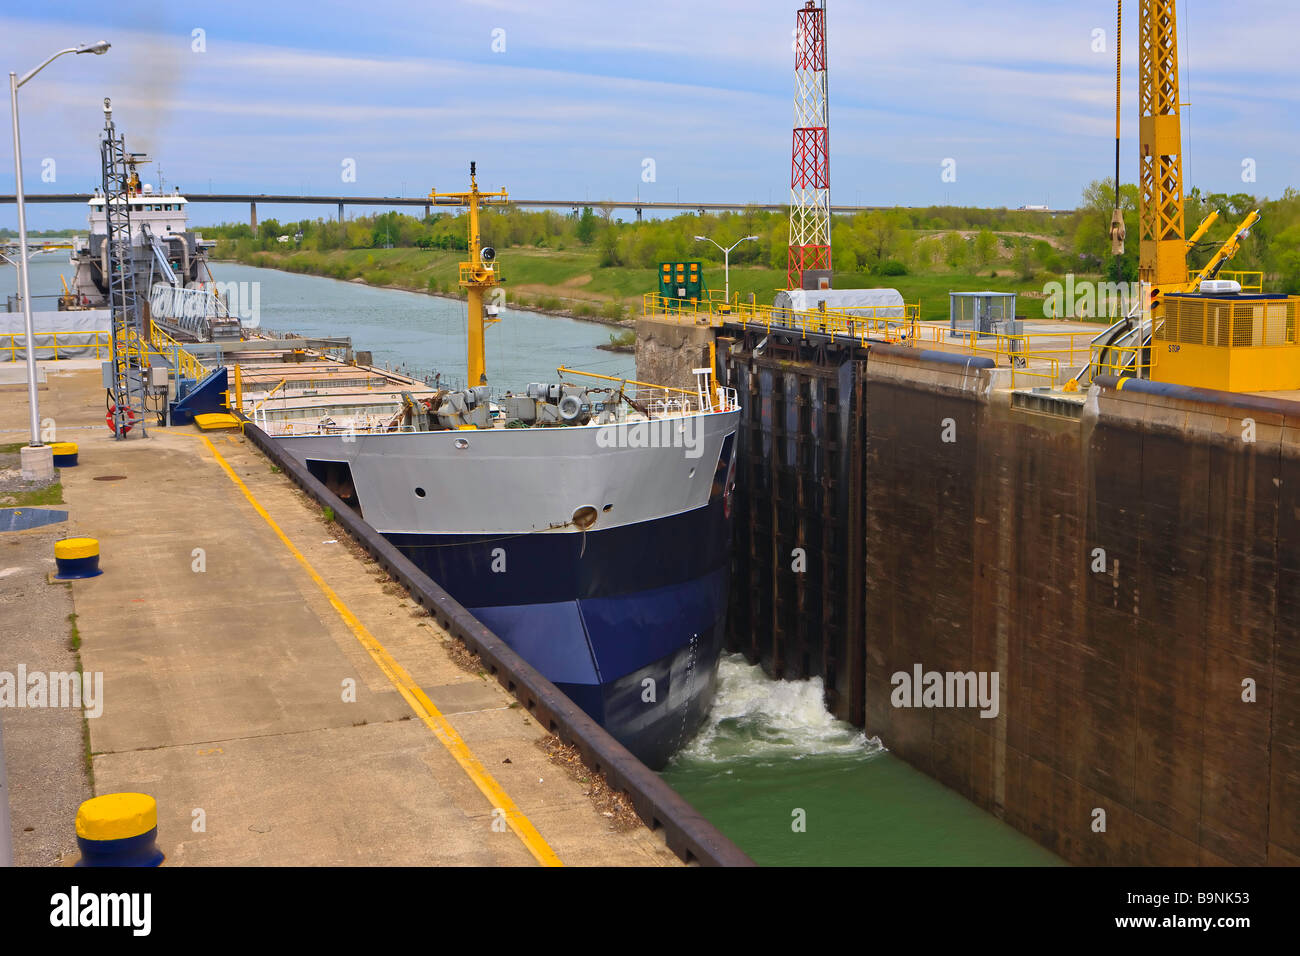 Large bulk carrier ship entering Lock 3 of the Welland Canals System at the St Catharines Museum,Welland Canals - Stock Image